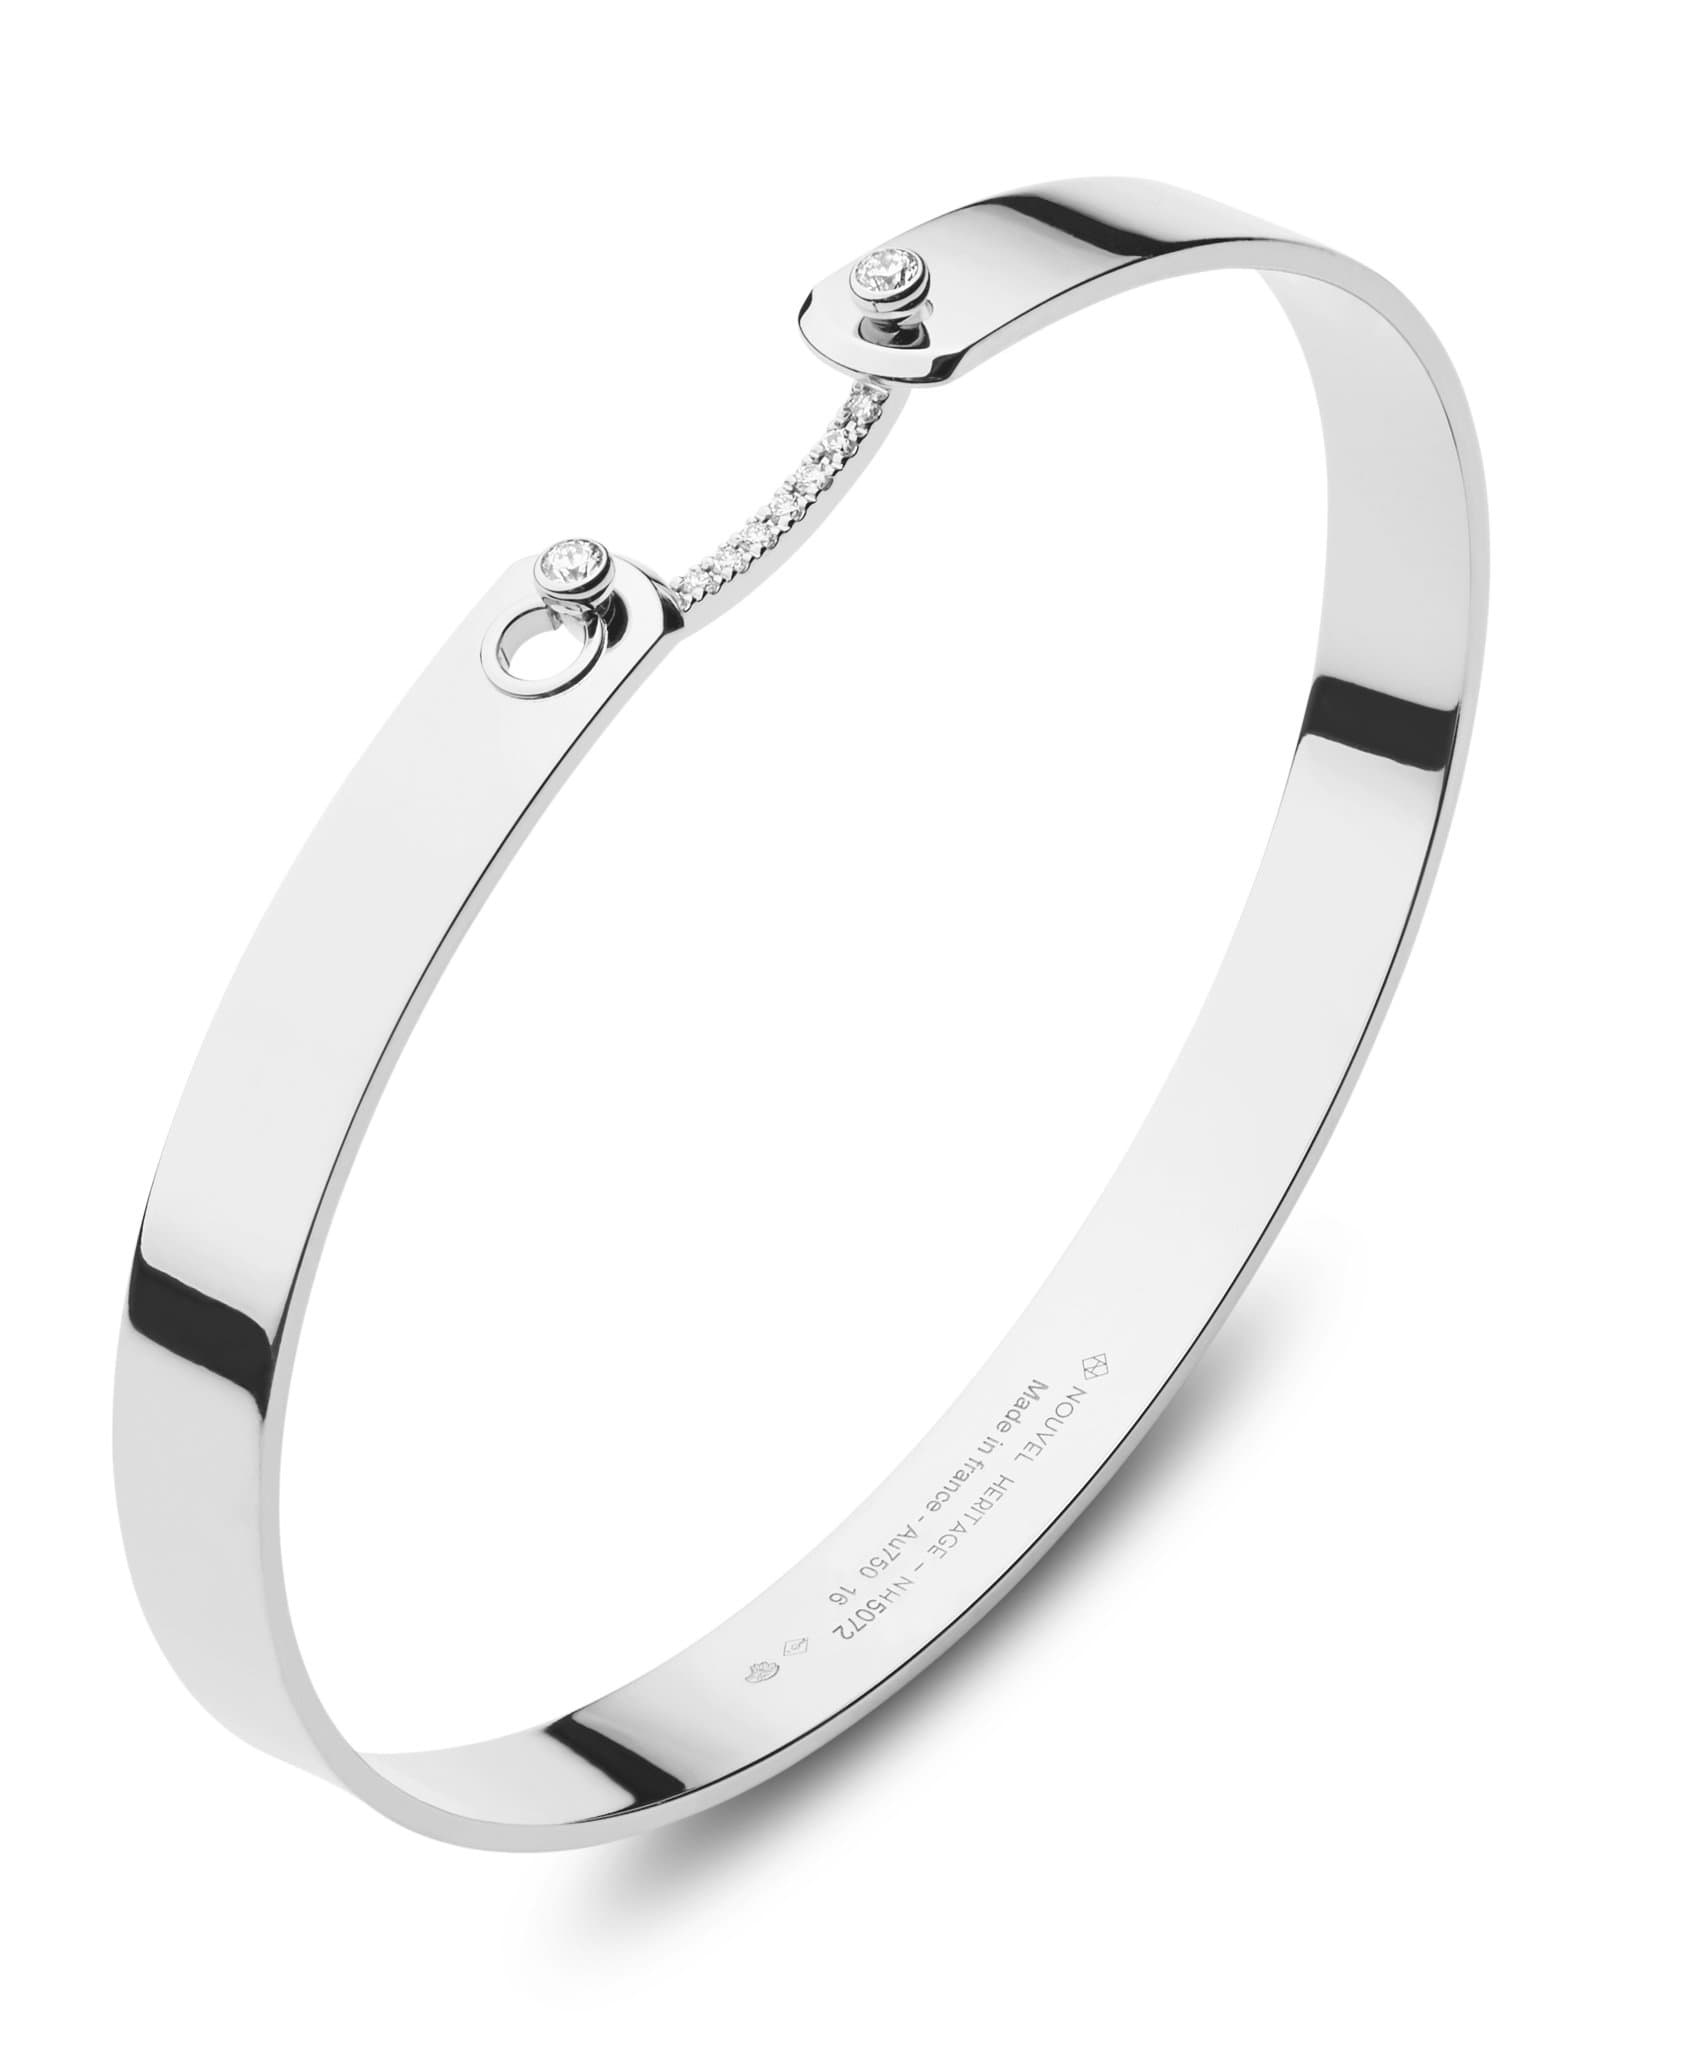 Business Meeting GM Mood Bangle: Discover Luxury Fine Jewelry | Nouvel Heritage || White Gold